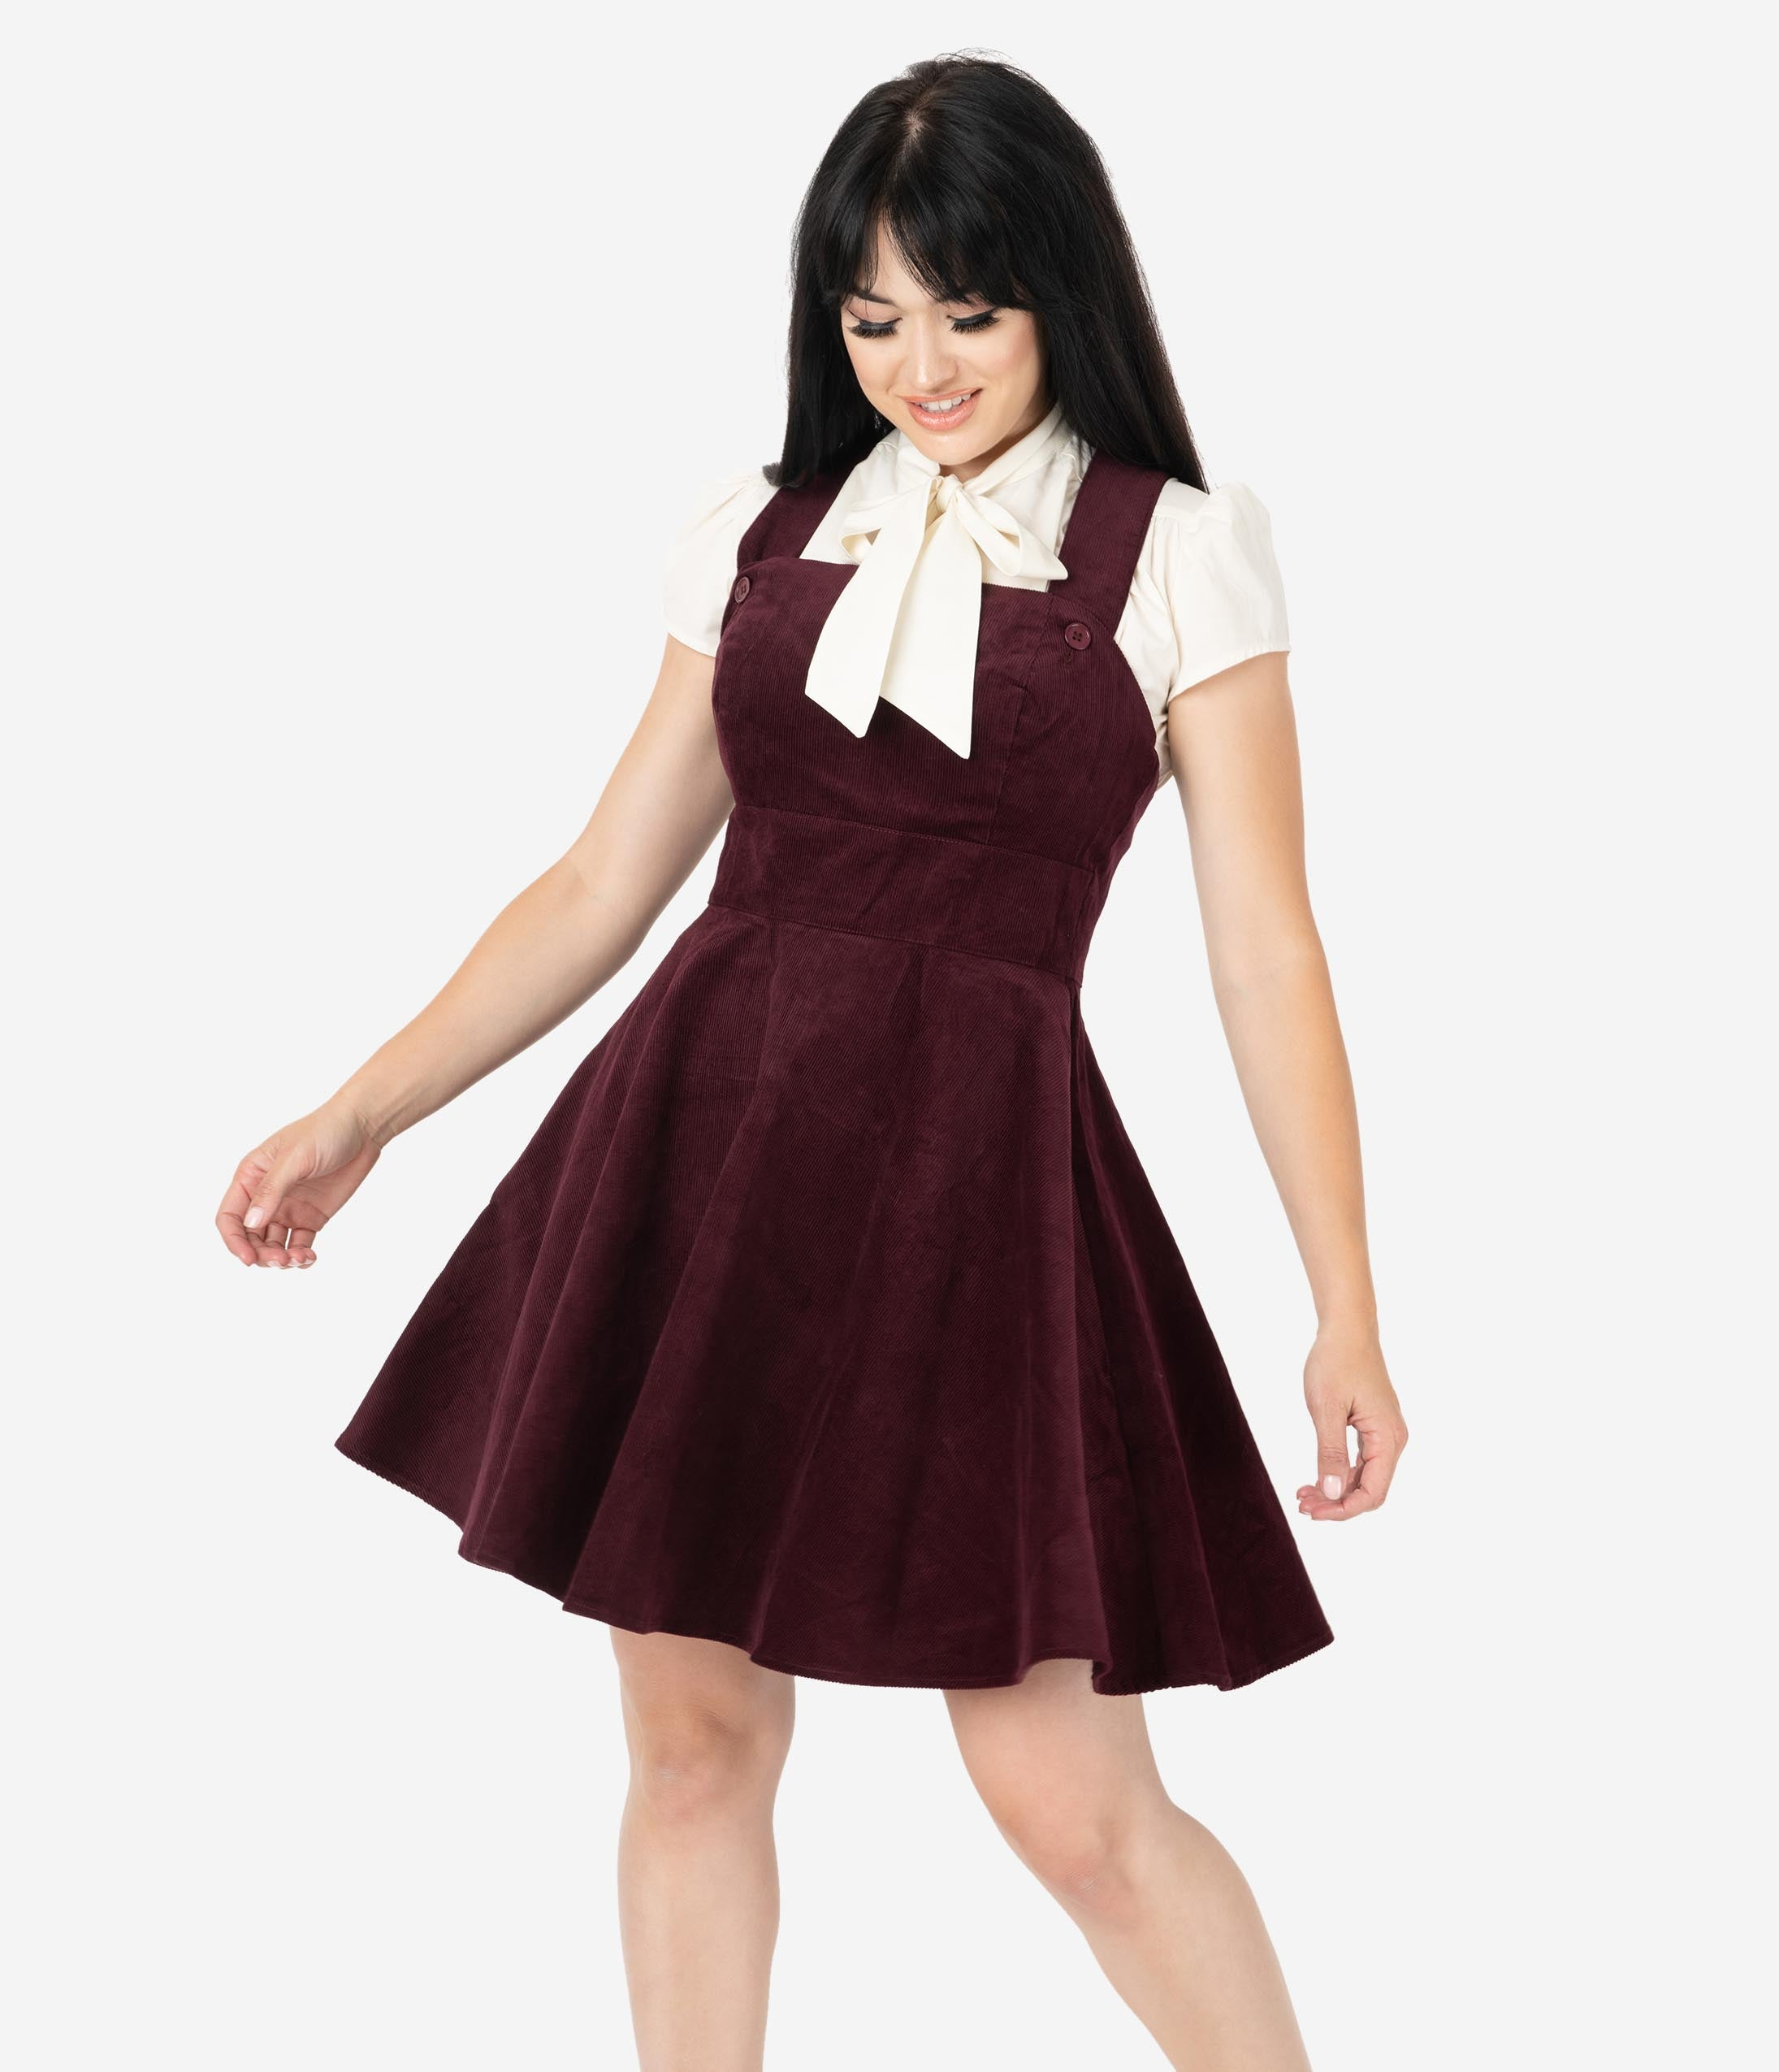 60s Skirts | 70s Hippie Skirts, Jumper Dresses Hell Bunny 1960S Wine Red Corduroy Wonder Years Pinafore Dress $68.00 AT vintagedancer.com